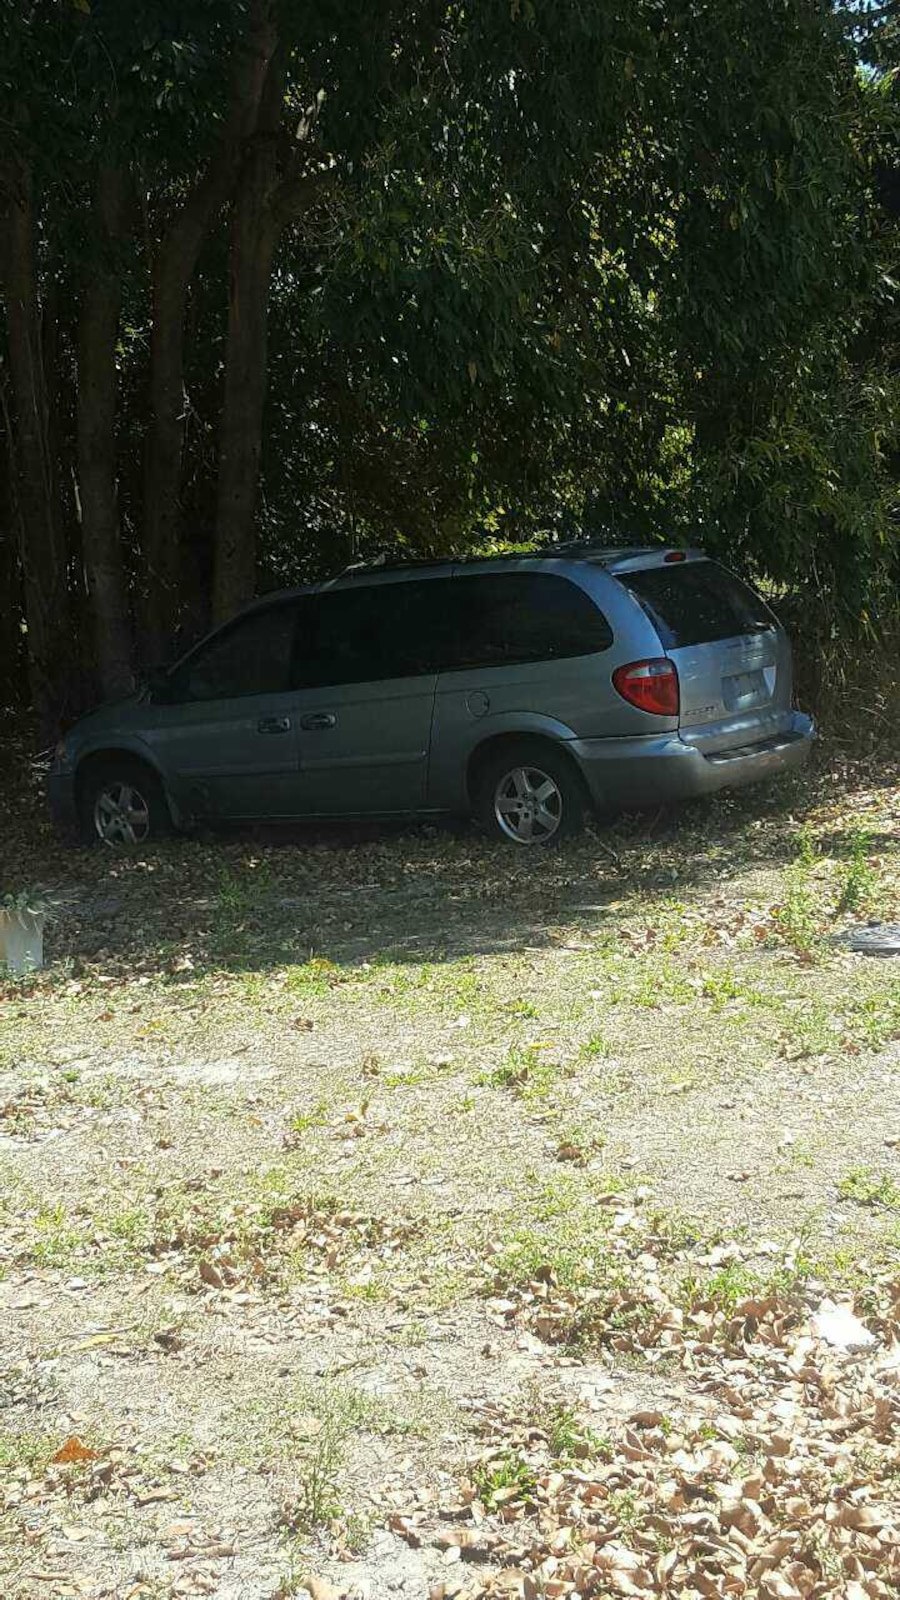 silver minivan - East Fort Myers